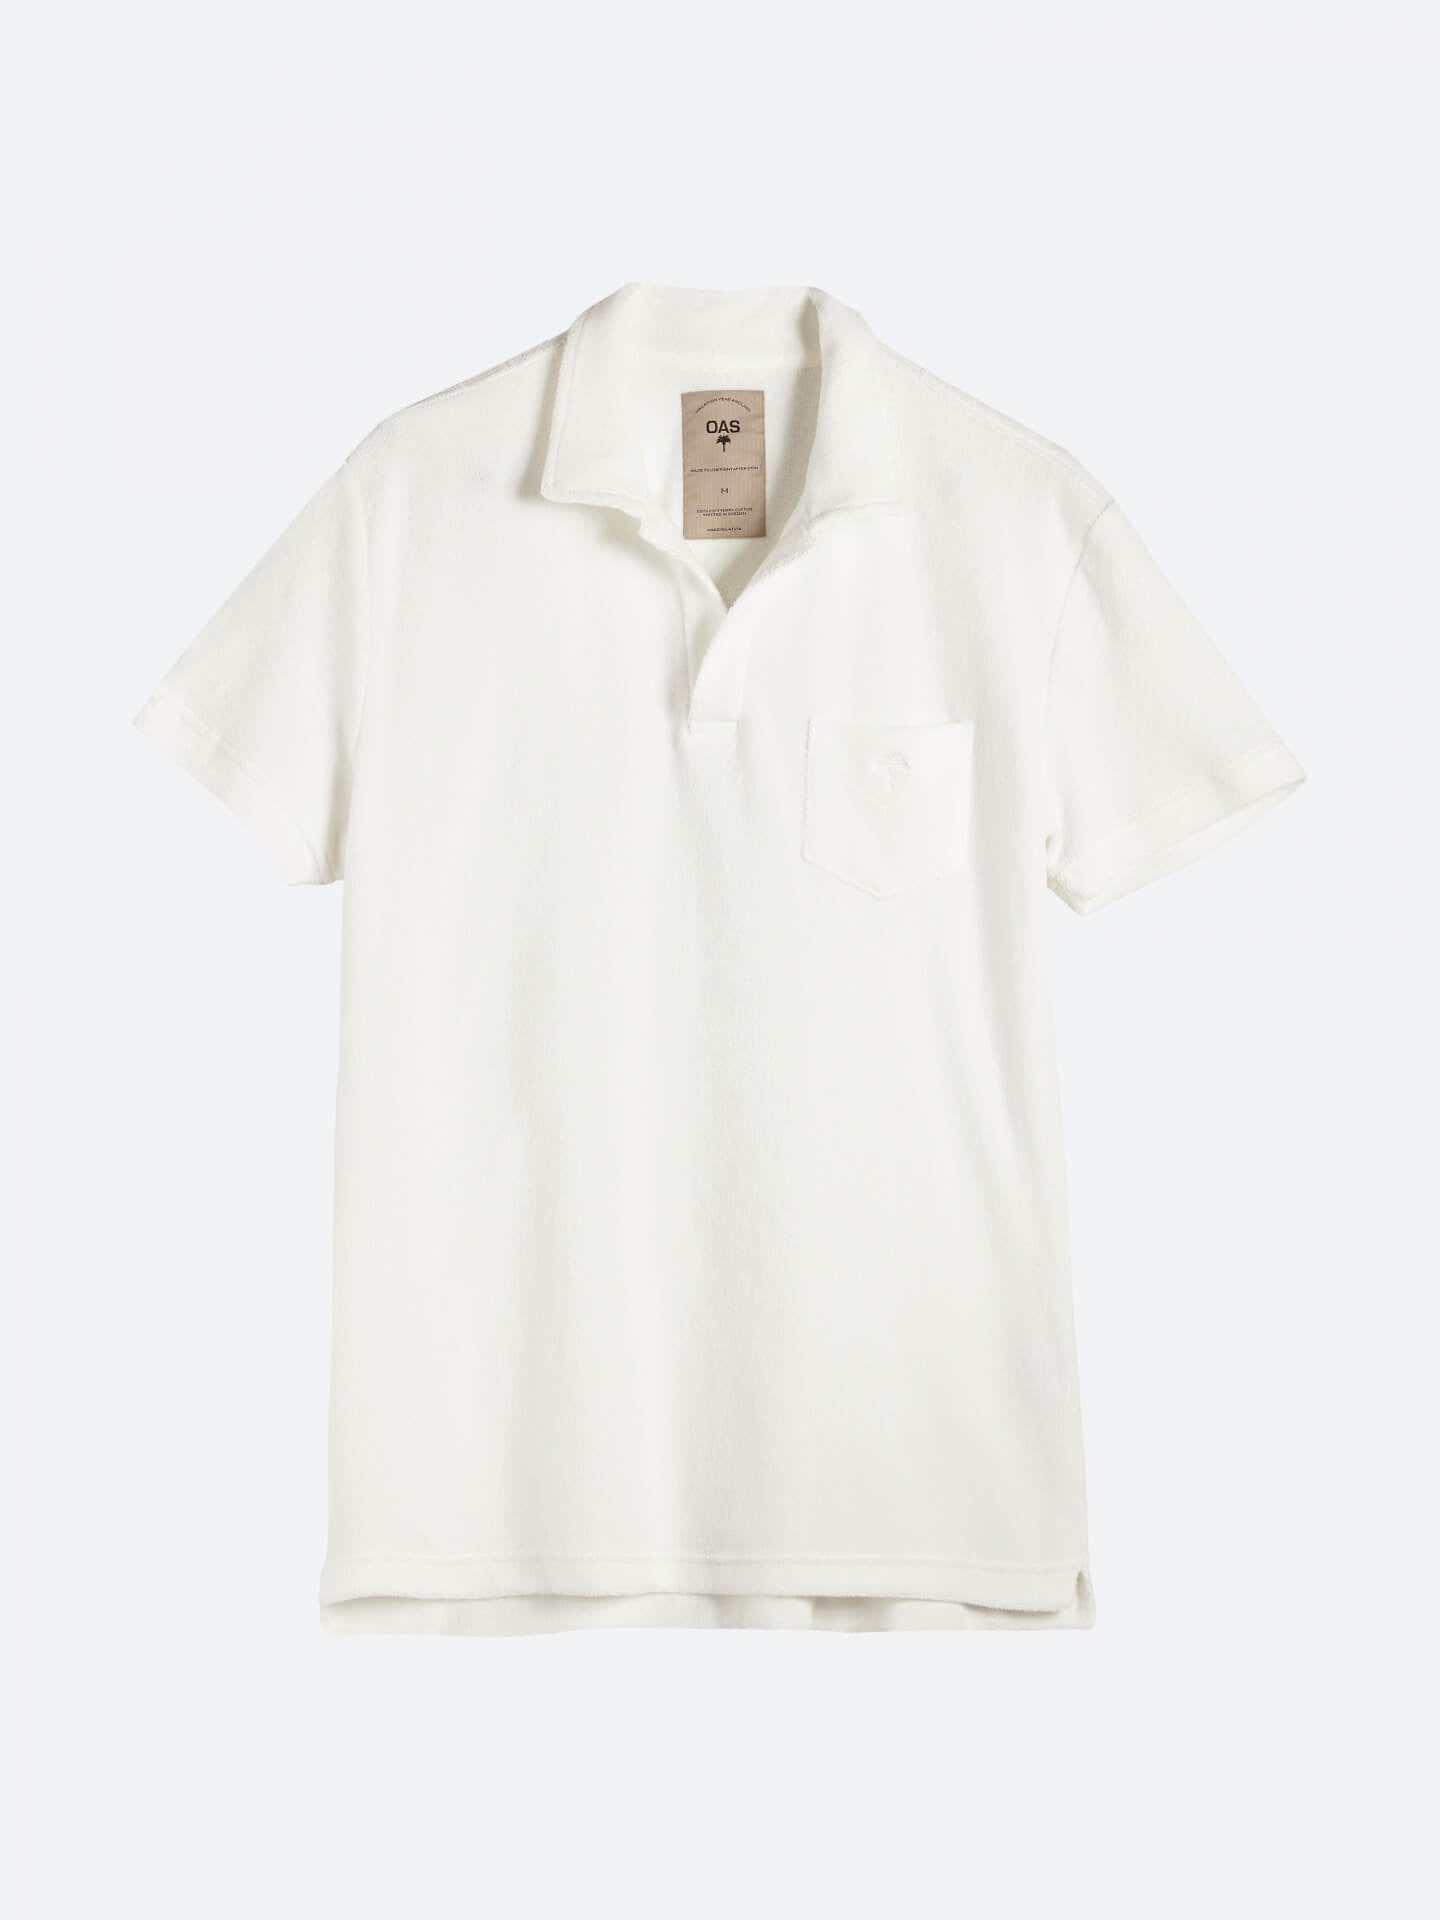 Oas Solid White Terry Shirt